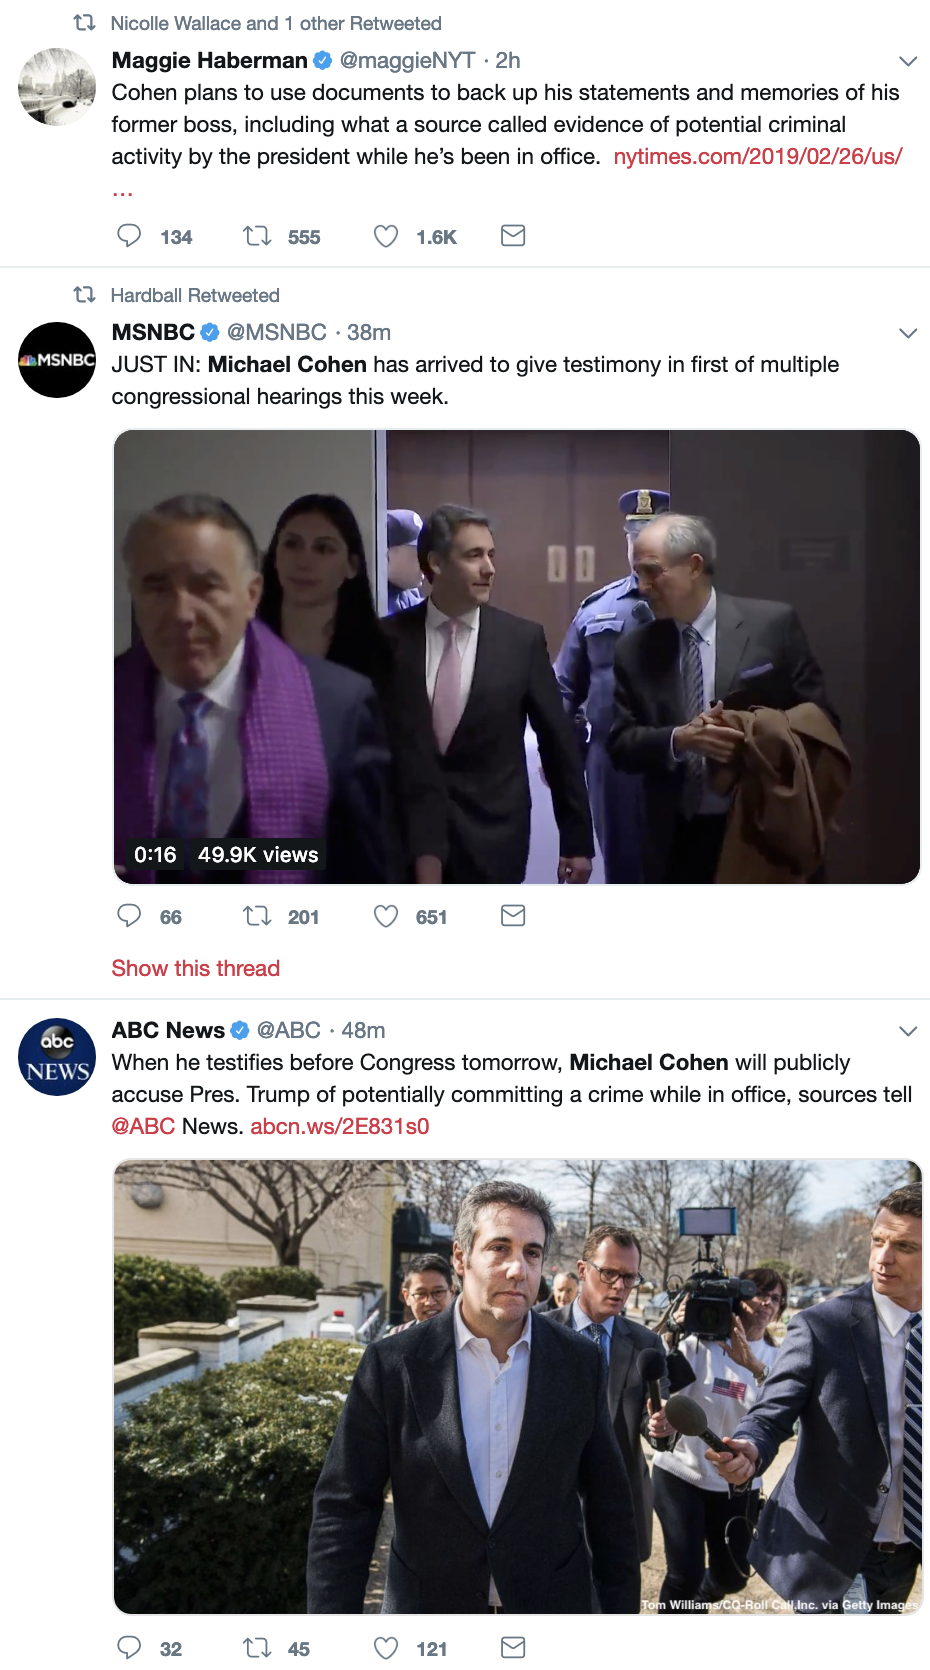 Screen-Shot-2019-02-26-at-8.51.46-AM Cohen To Testify Against Trump's Crimes While In Office In 'Granular Detail' Corruption Crime Donald Trump Election 2016 Mueller Politics Robert Mueller Russia Top Stories